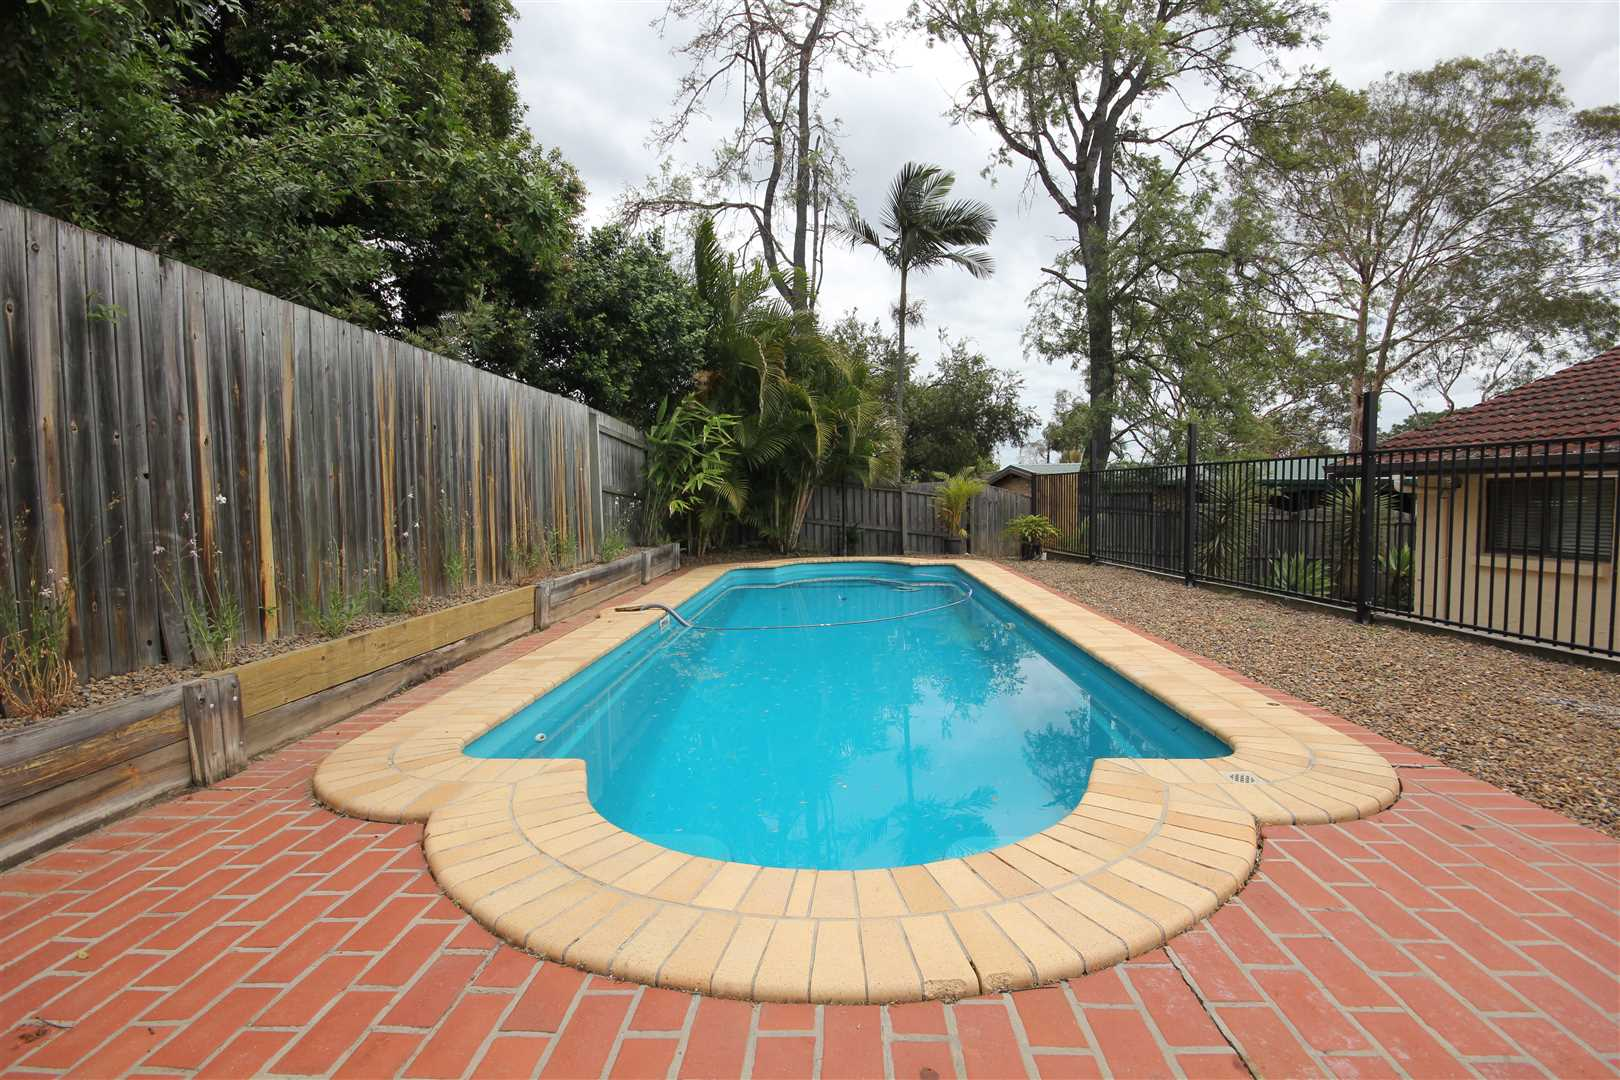 Family home with pool, just in time for Summer!